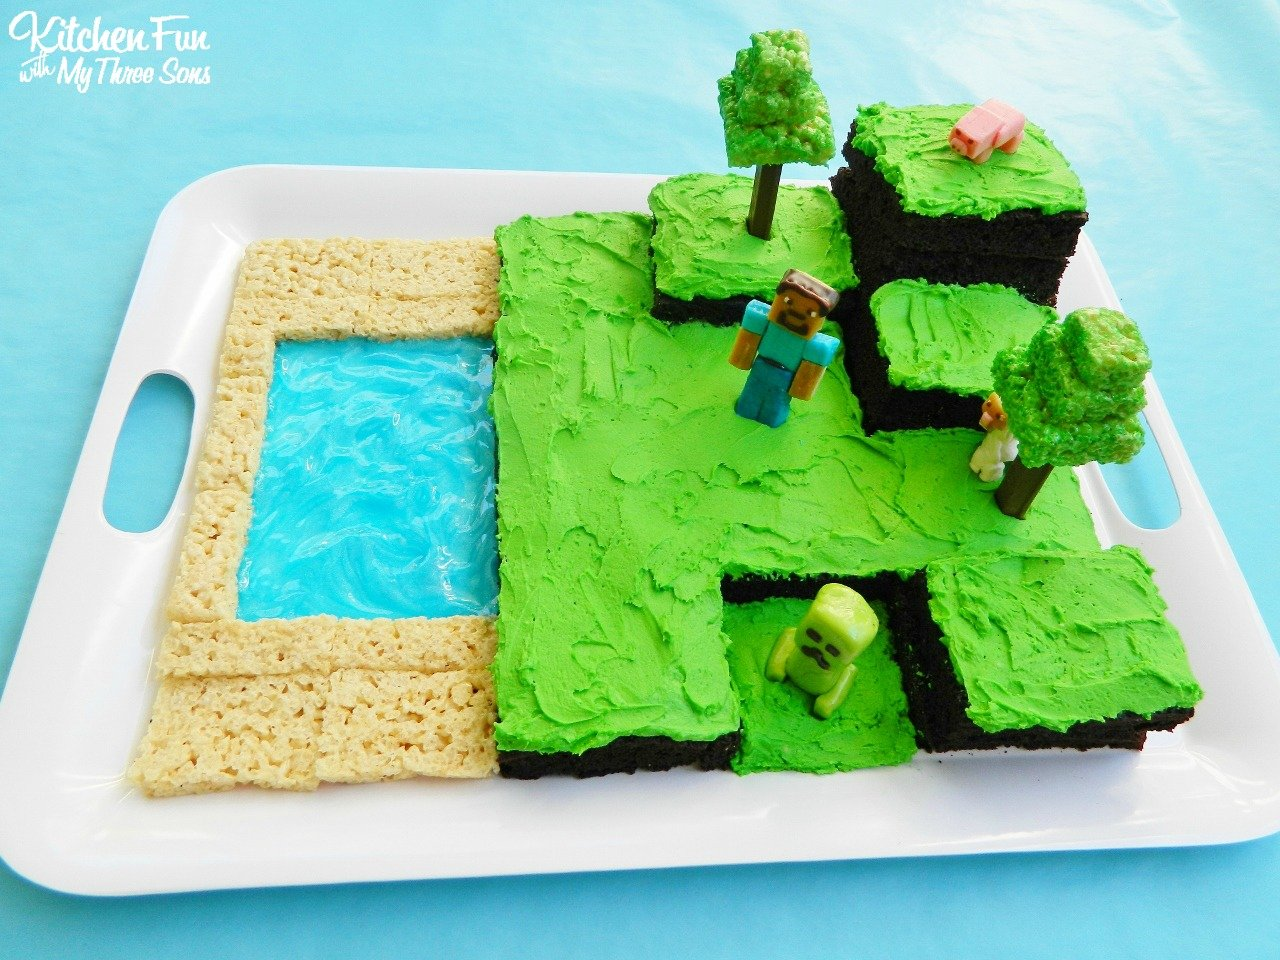 Easy Minecraft Birthday Party Cake Kitchen Fun With My 3